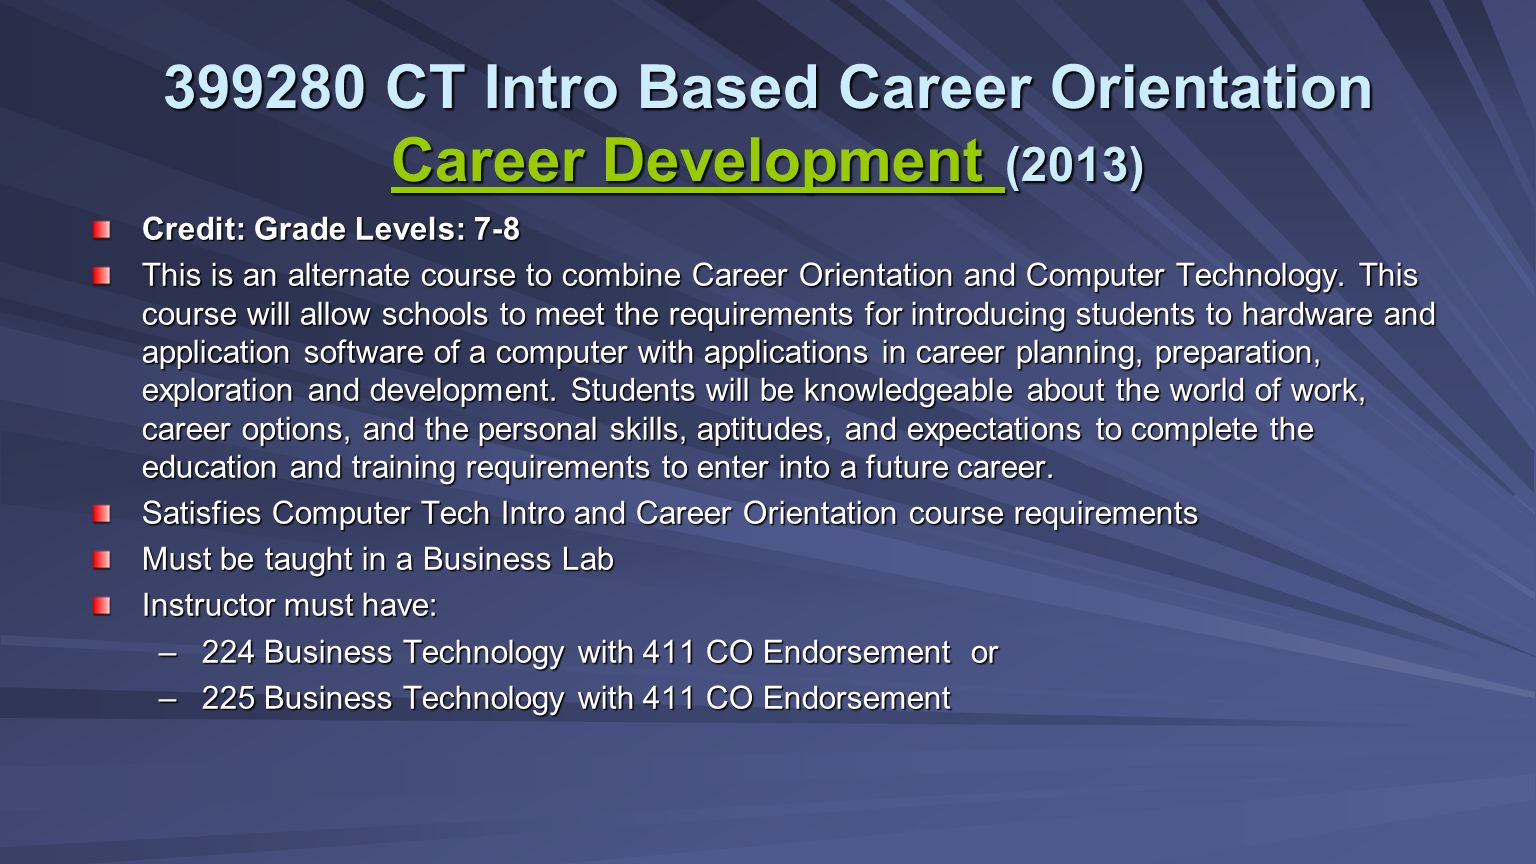 Credit: Grade Levels: 7-8 This is an alternate course to combine Career Orientation and Computer Technology.